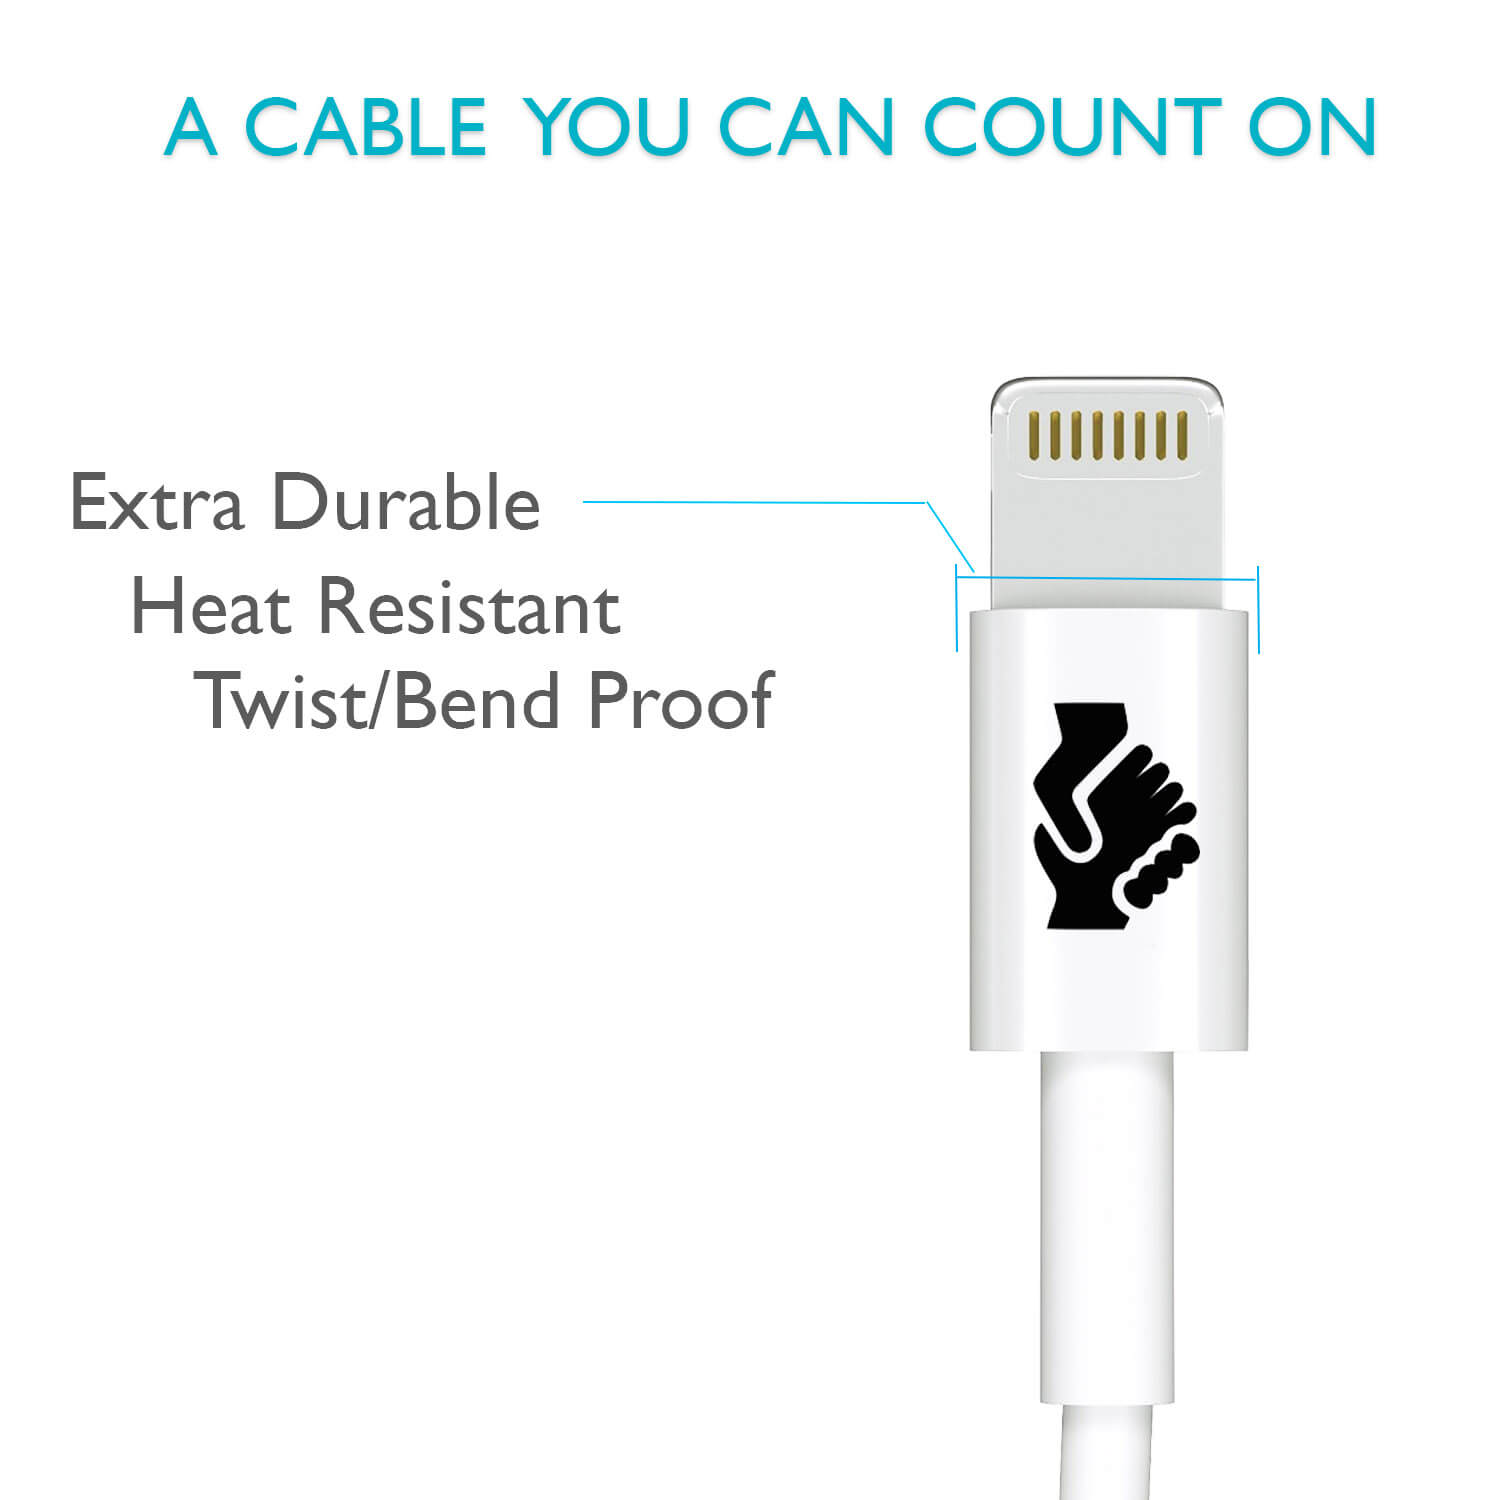 Trusted Cables Show Off